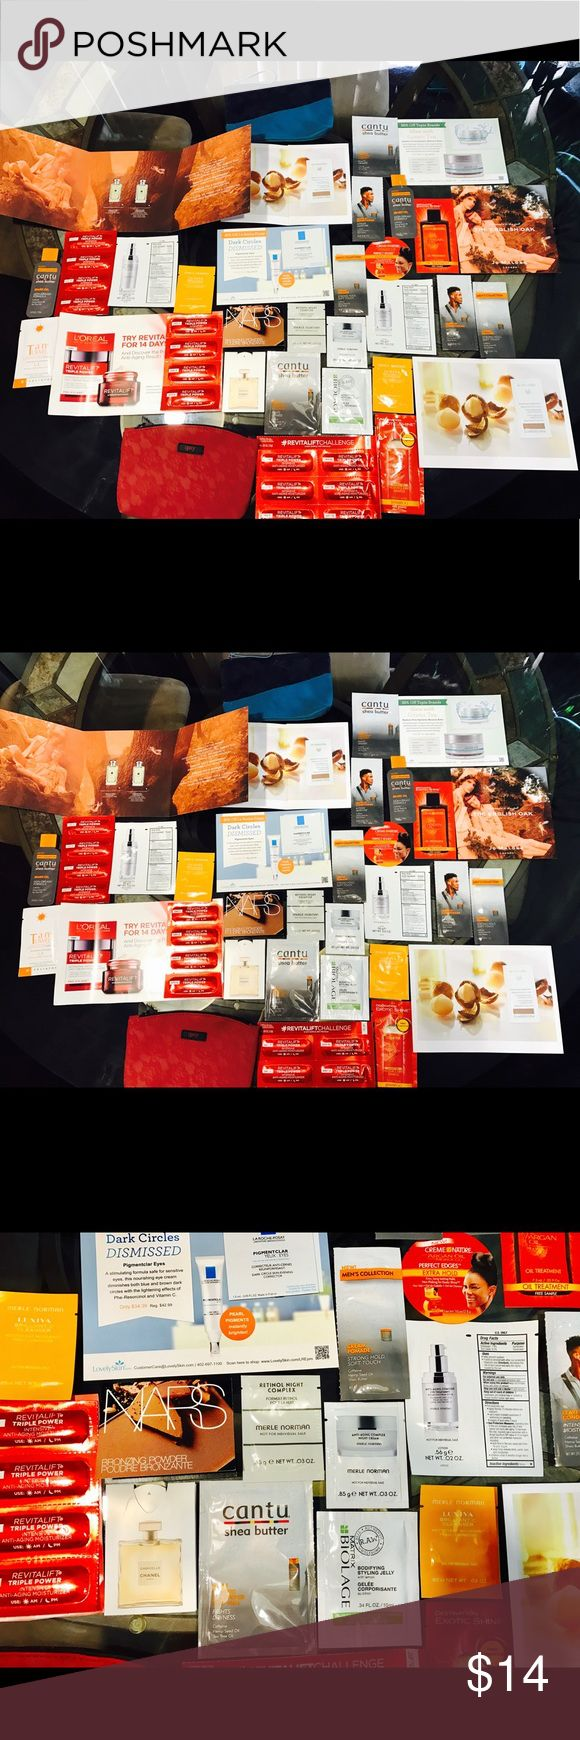 Lot 43pc Cosmetics samples Big Lot 43pc Cosmetics samples for $14. You will get: NARS, Chanel, La Roche Posay, Cantu. 6 samples Merle Norman , 14 samples Revitalift triple power anti aging moisturizer; 2 samples Dr.Hauschka regeneration eye cream, 2 New Ipsy  makeup bags & more, more others. All total 43 pc. Everything 100% New. Makeup